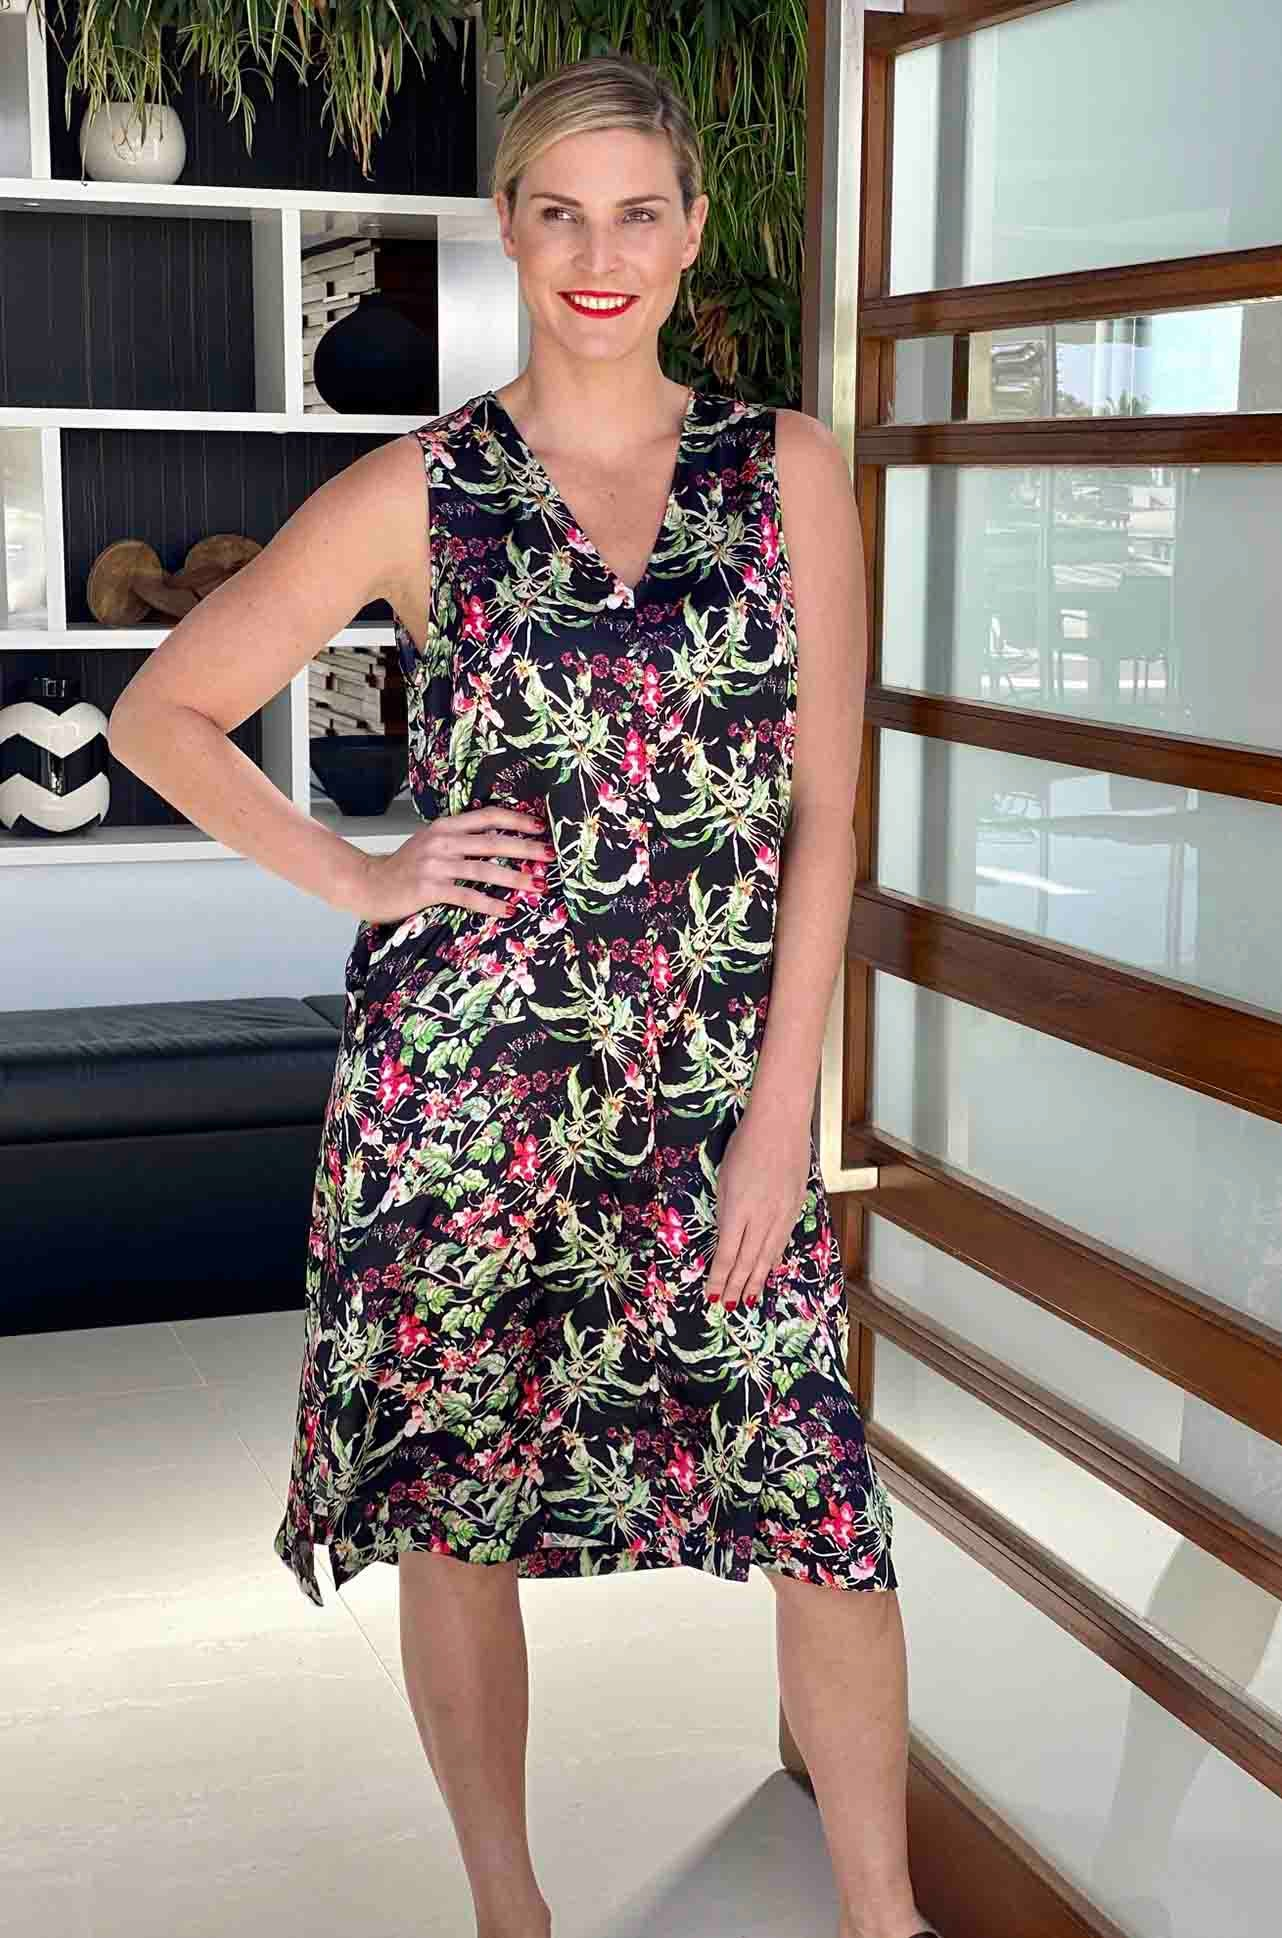 Mela Purdie - Aero Sheath in Honeysuckle Floral Print